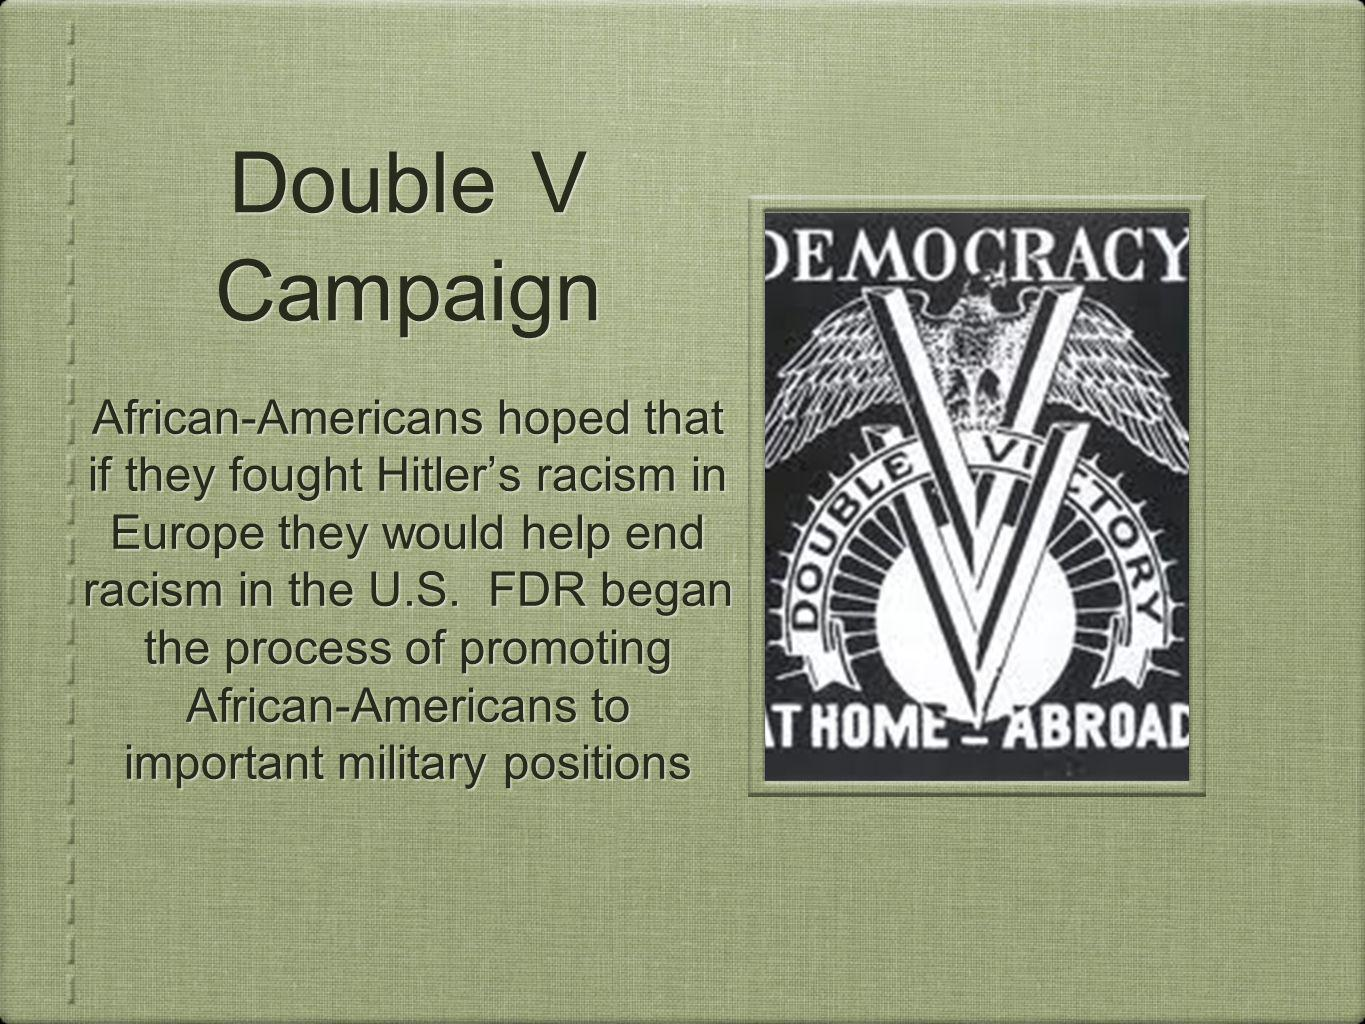 Double V Campaign African-Americans hoped that if they fought Hitlers racism in Europe they would help end racism in the U.S.